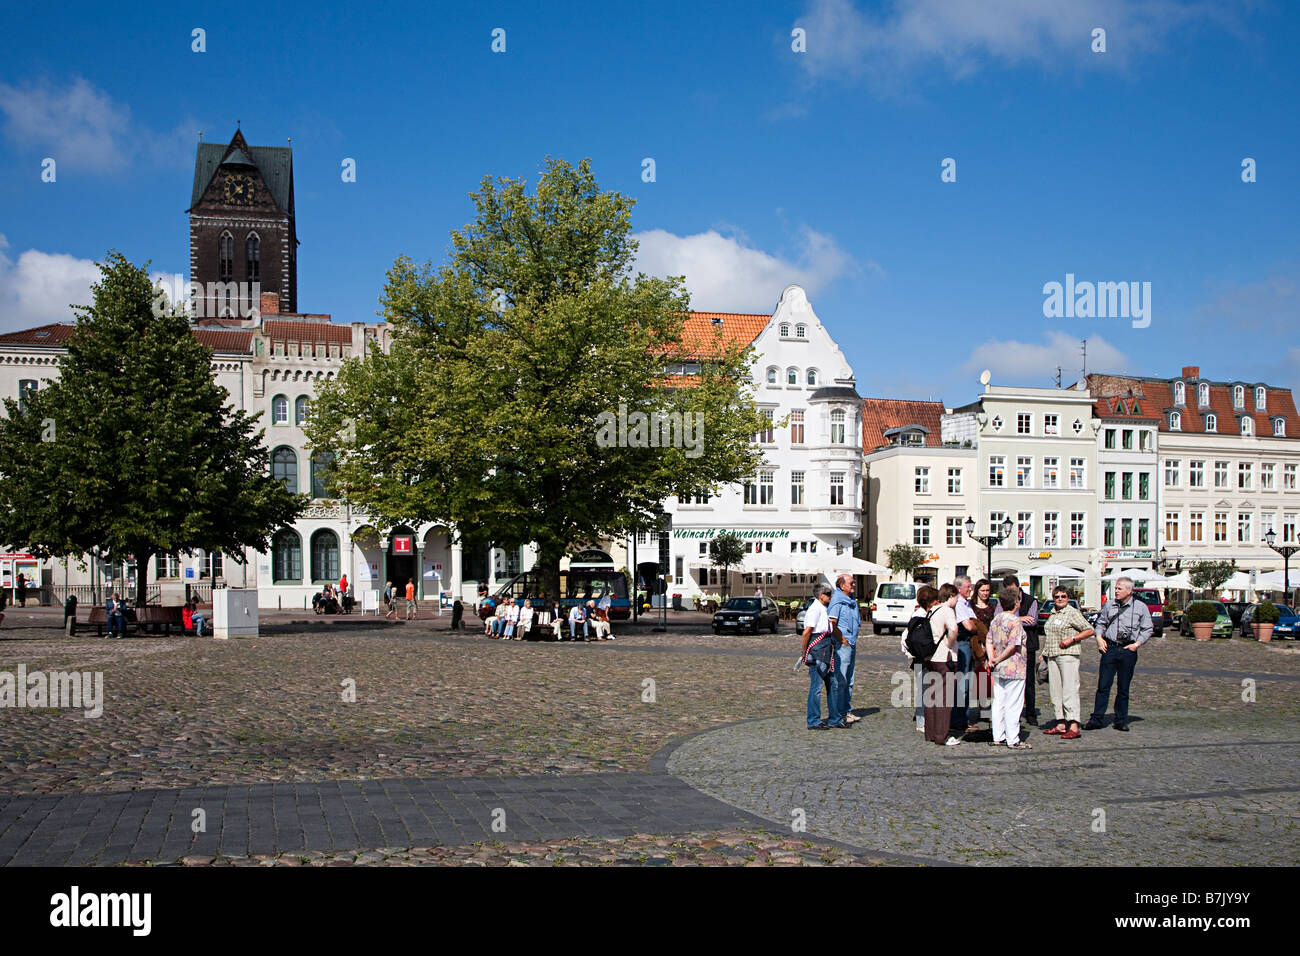 Tour group in main square Wismar Germany - Stock Image